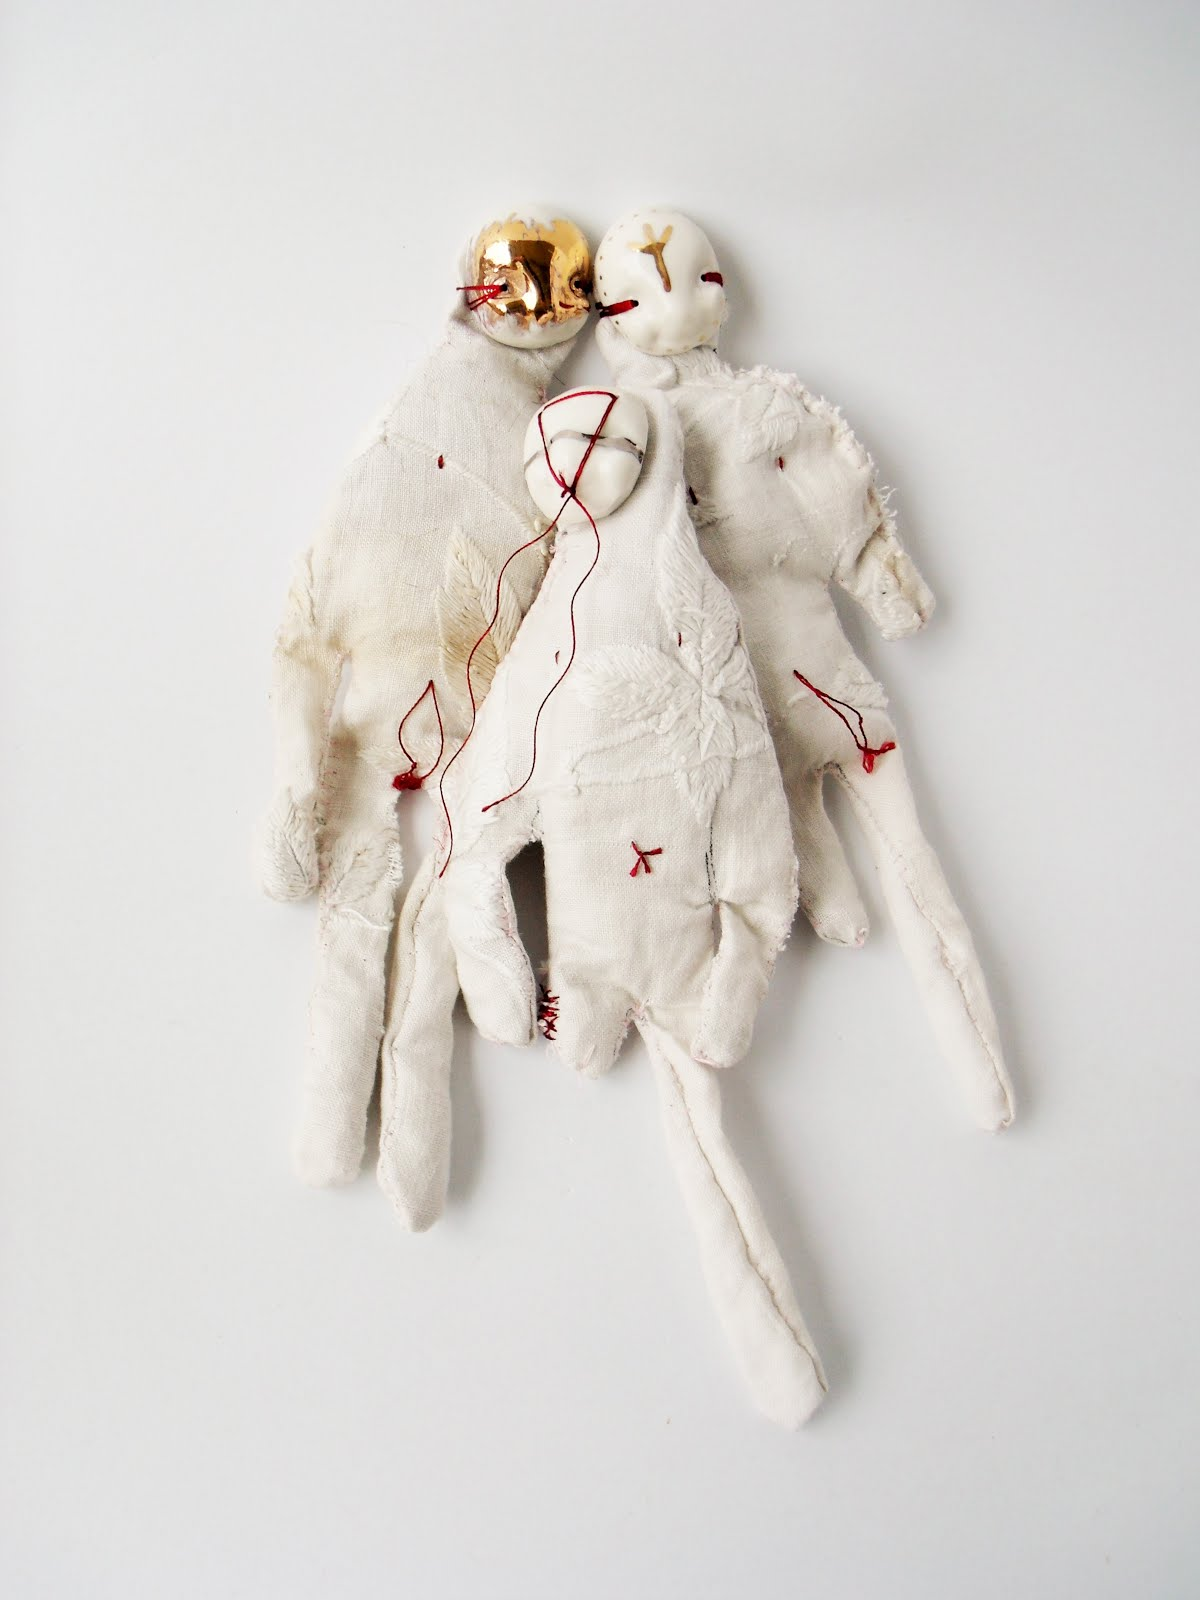 The Removing of the Veil, dolls, 2016